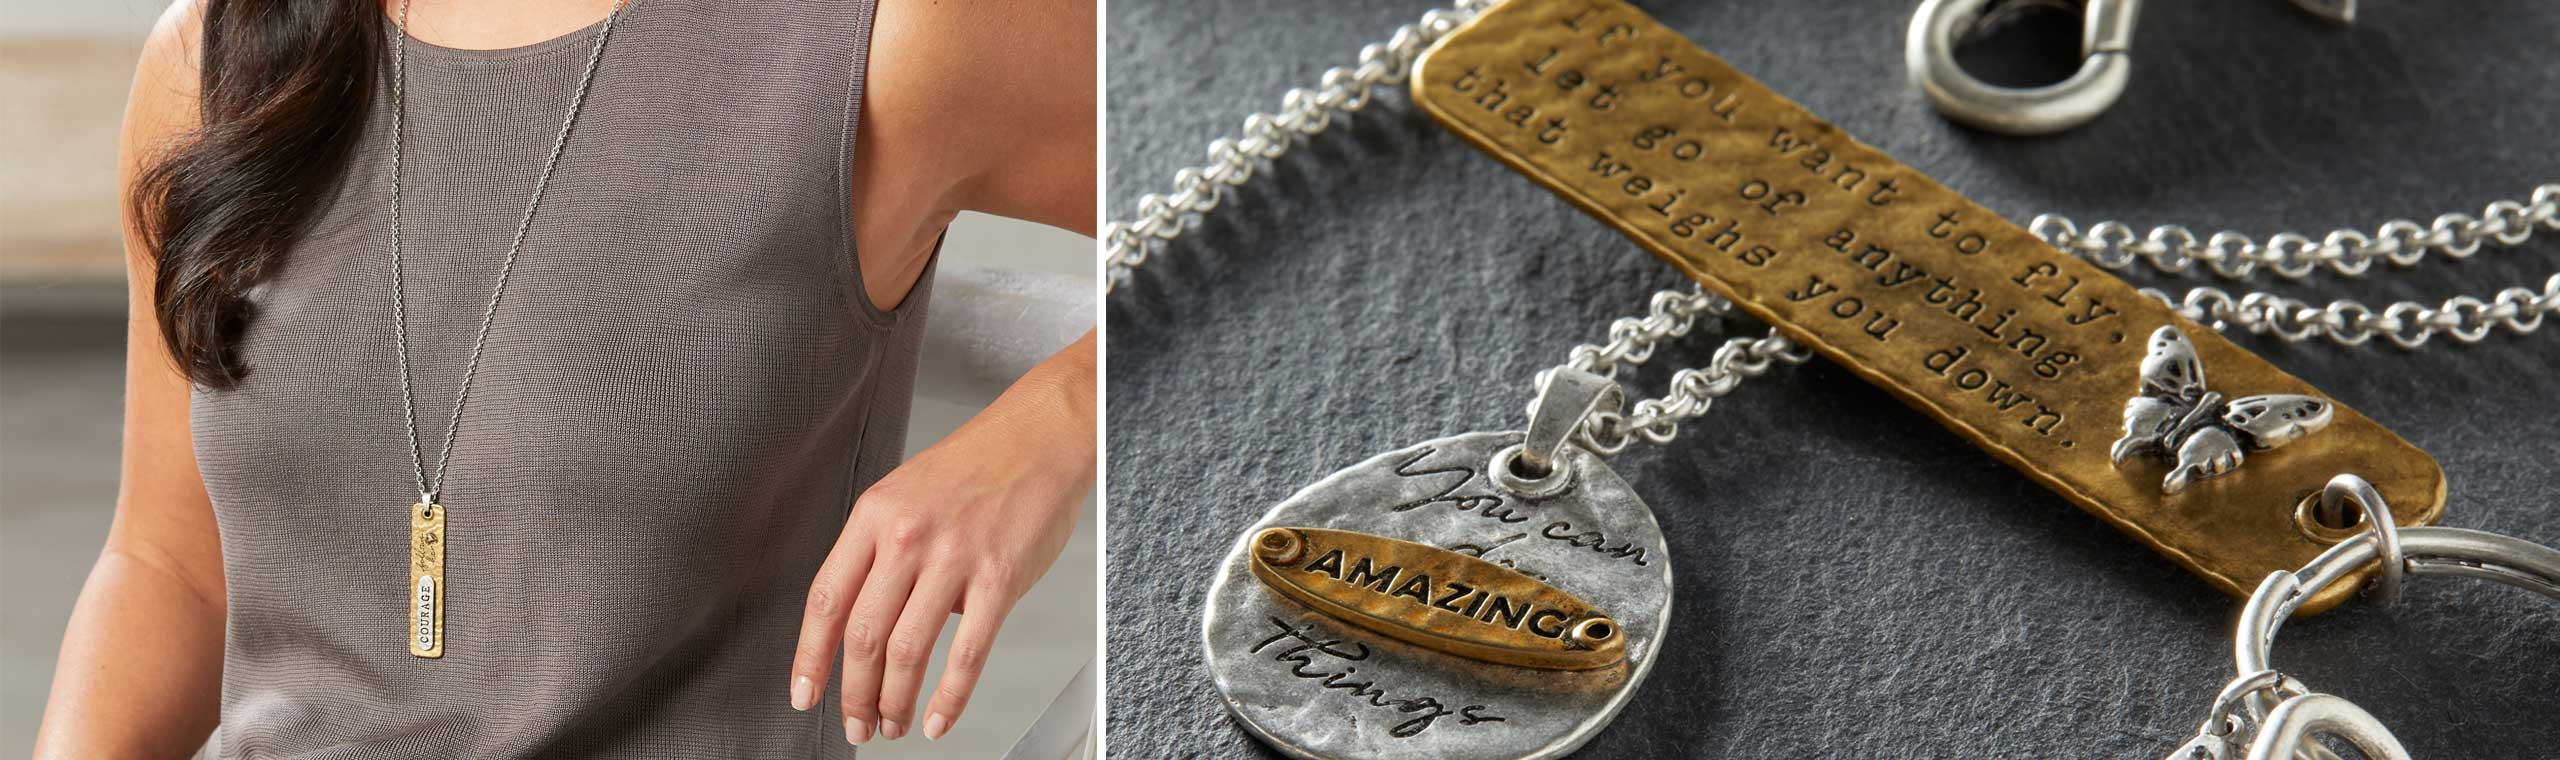 Woman wearing gold necklace engraved with the words Courage follows her